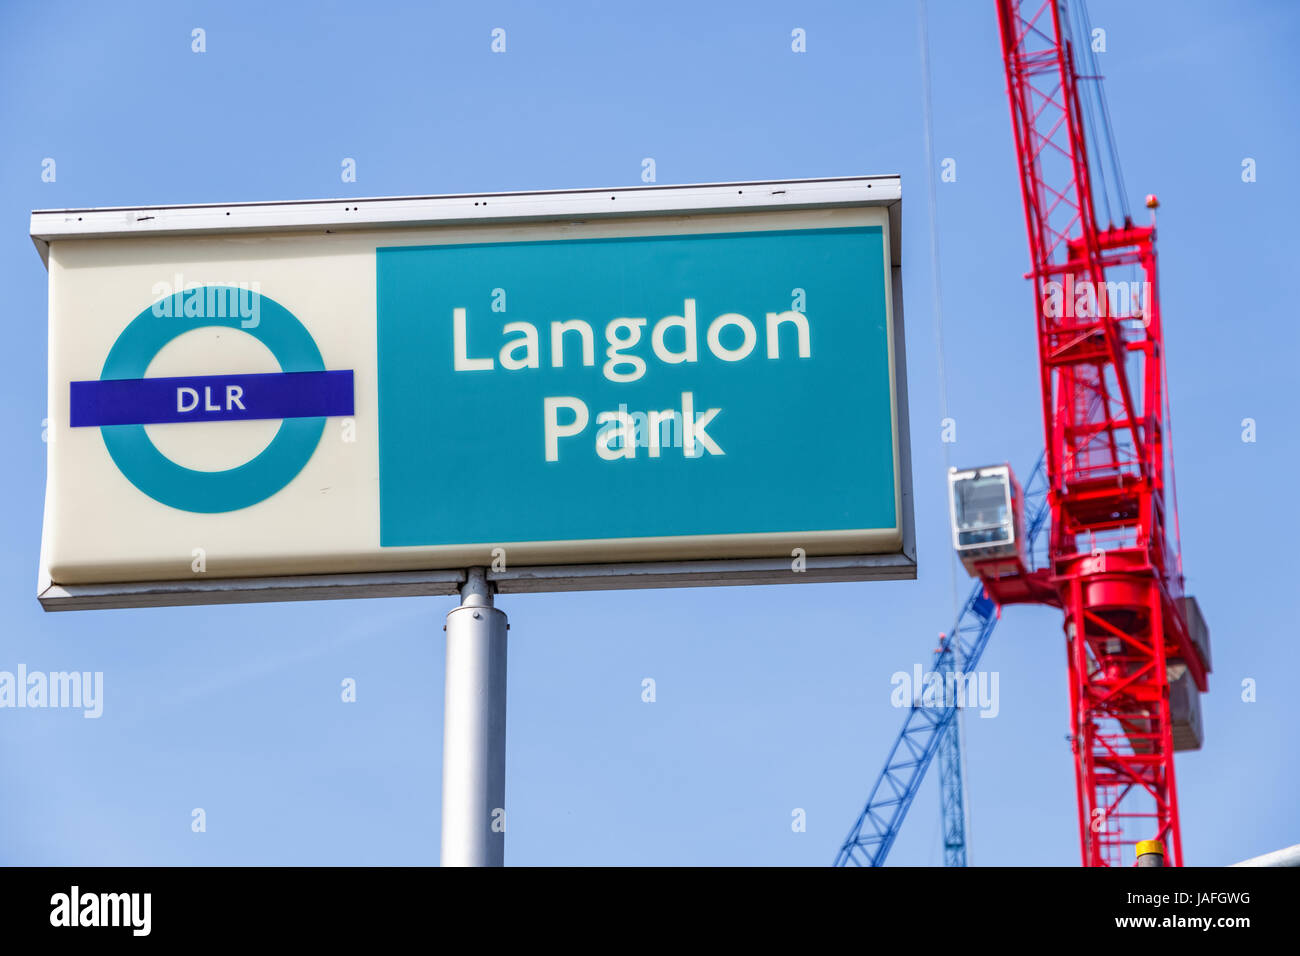 London, UK - March 27th, 2017 - Langdon Park sign with building cranes in the background - Stock Image